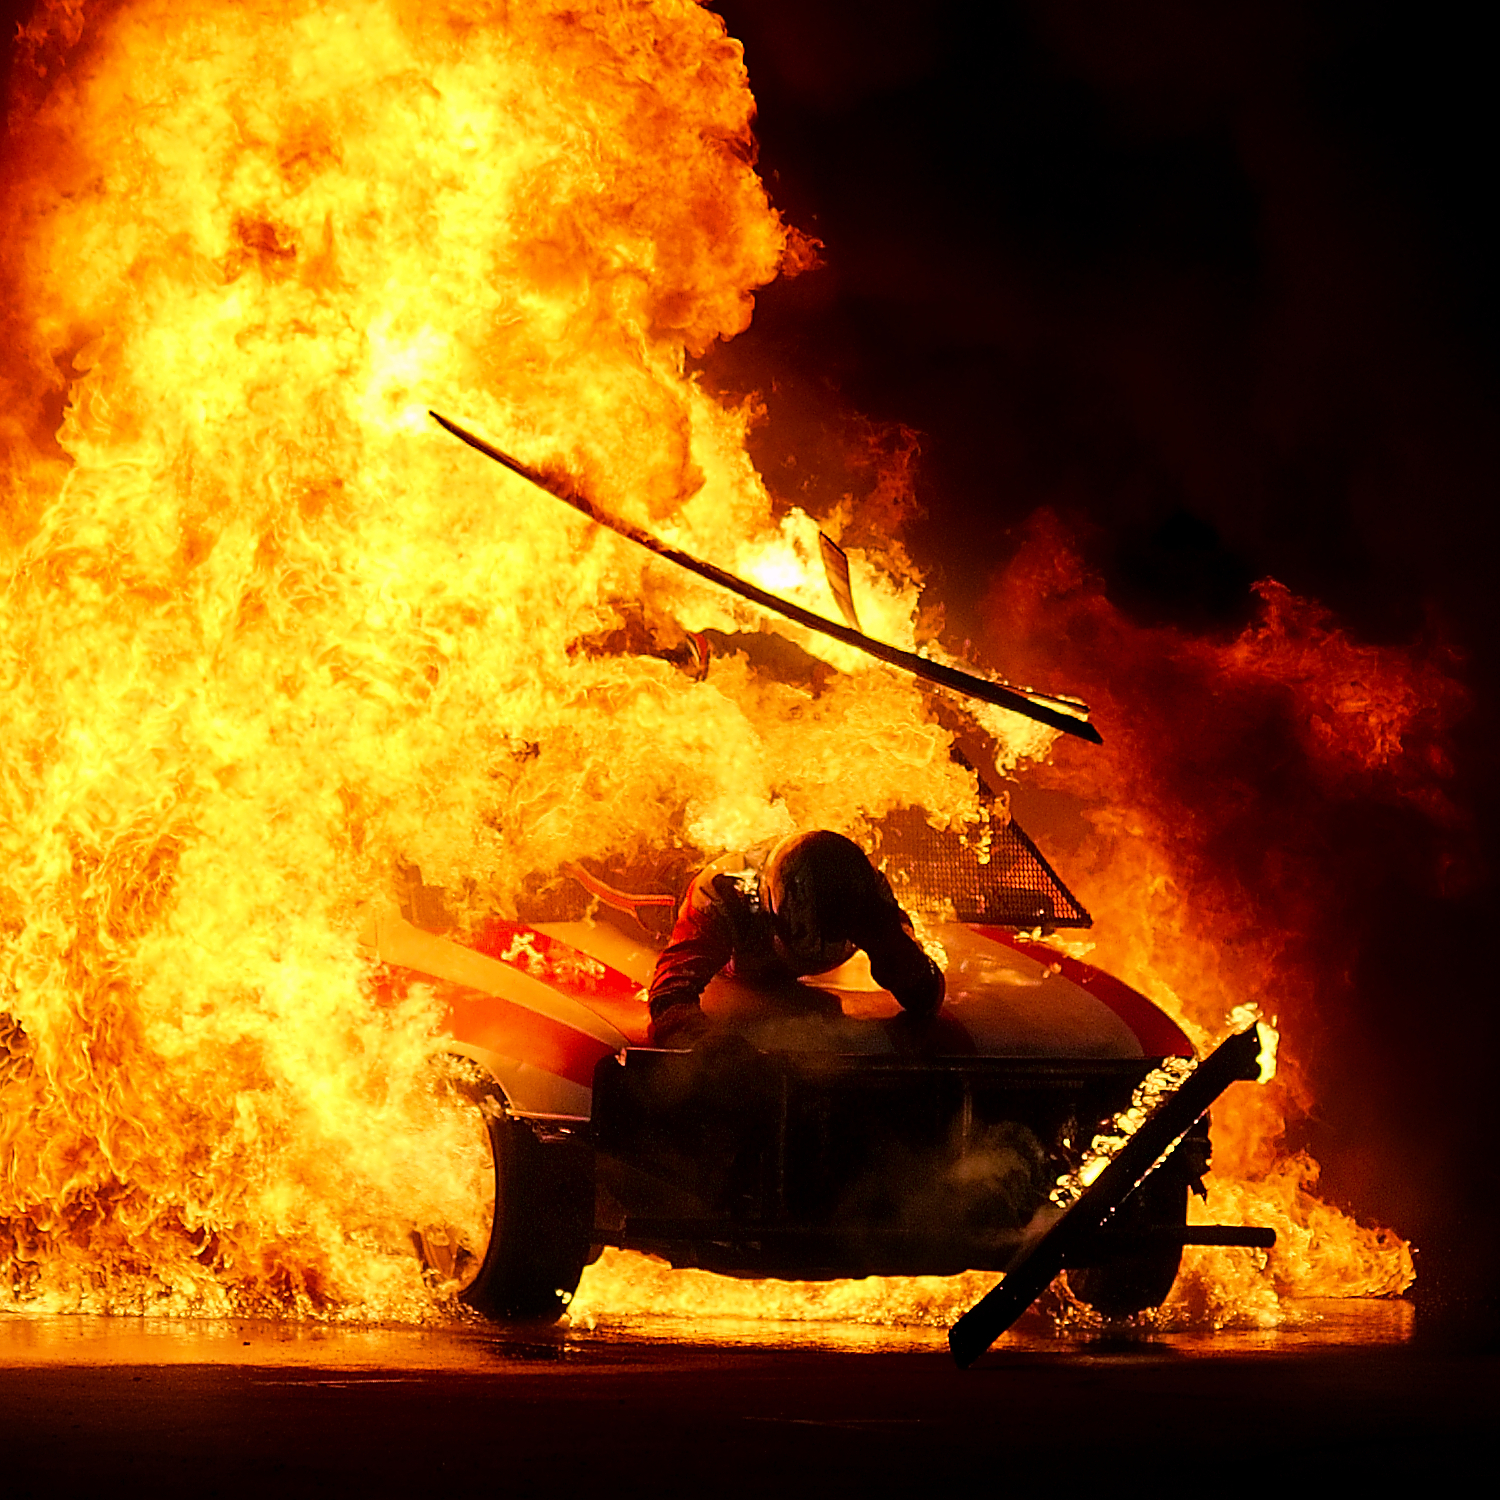 Pyrotechnics stunt exhibition by